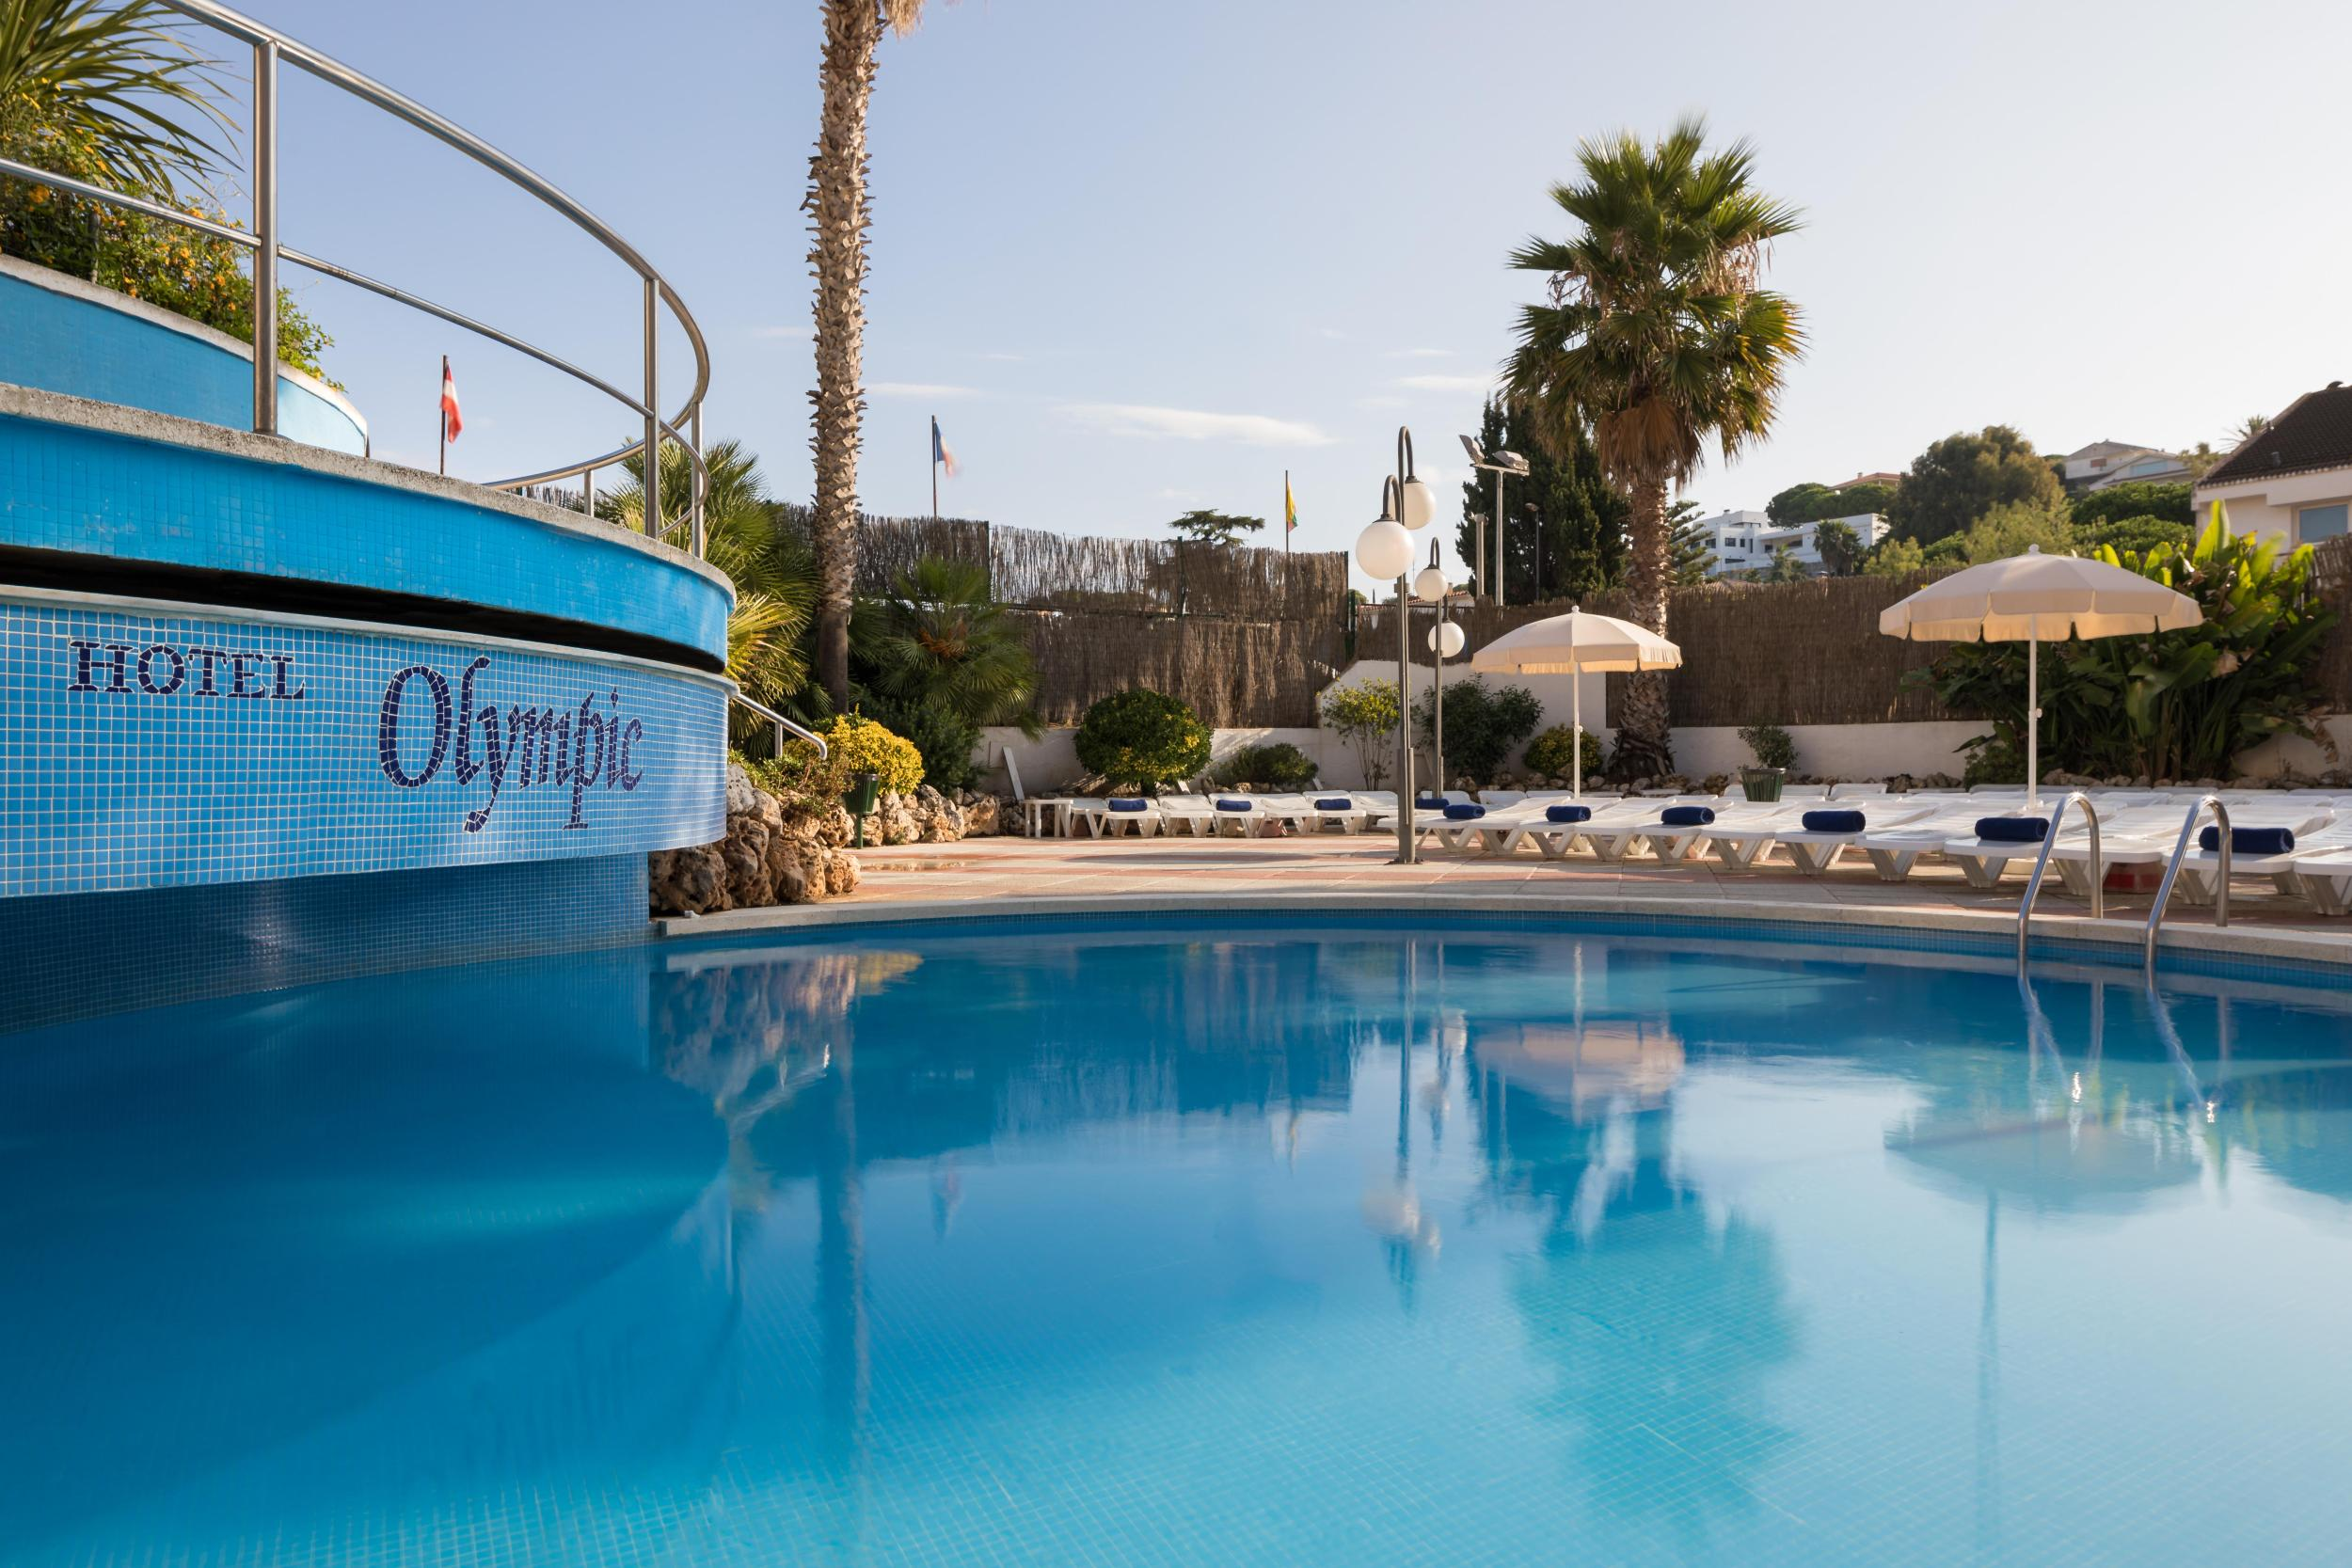 H.TOP Olympic Hotel in Calella, Costa Brava, Spain